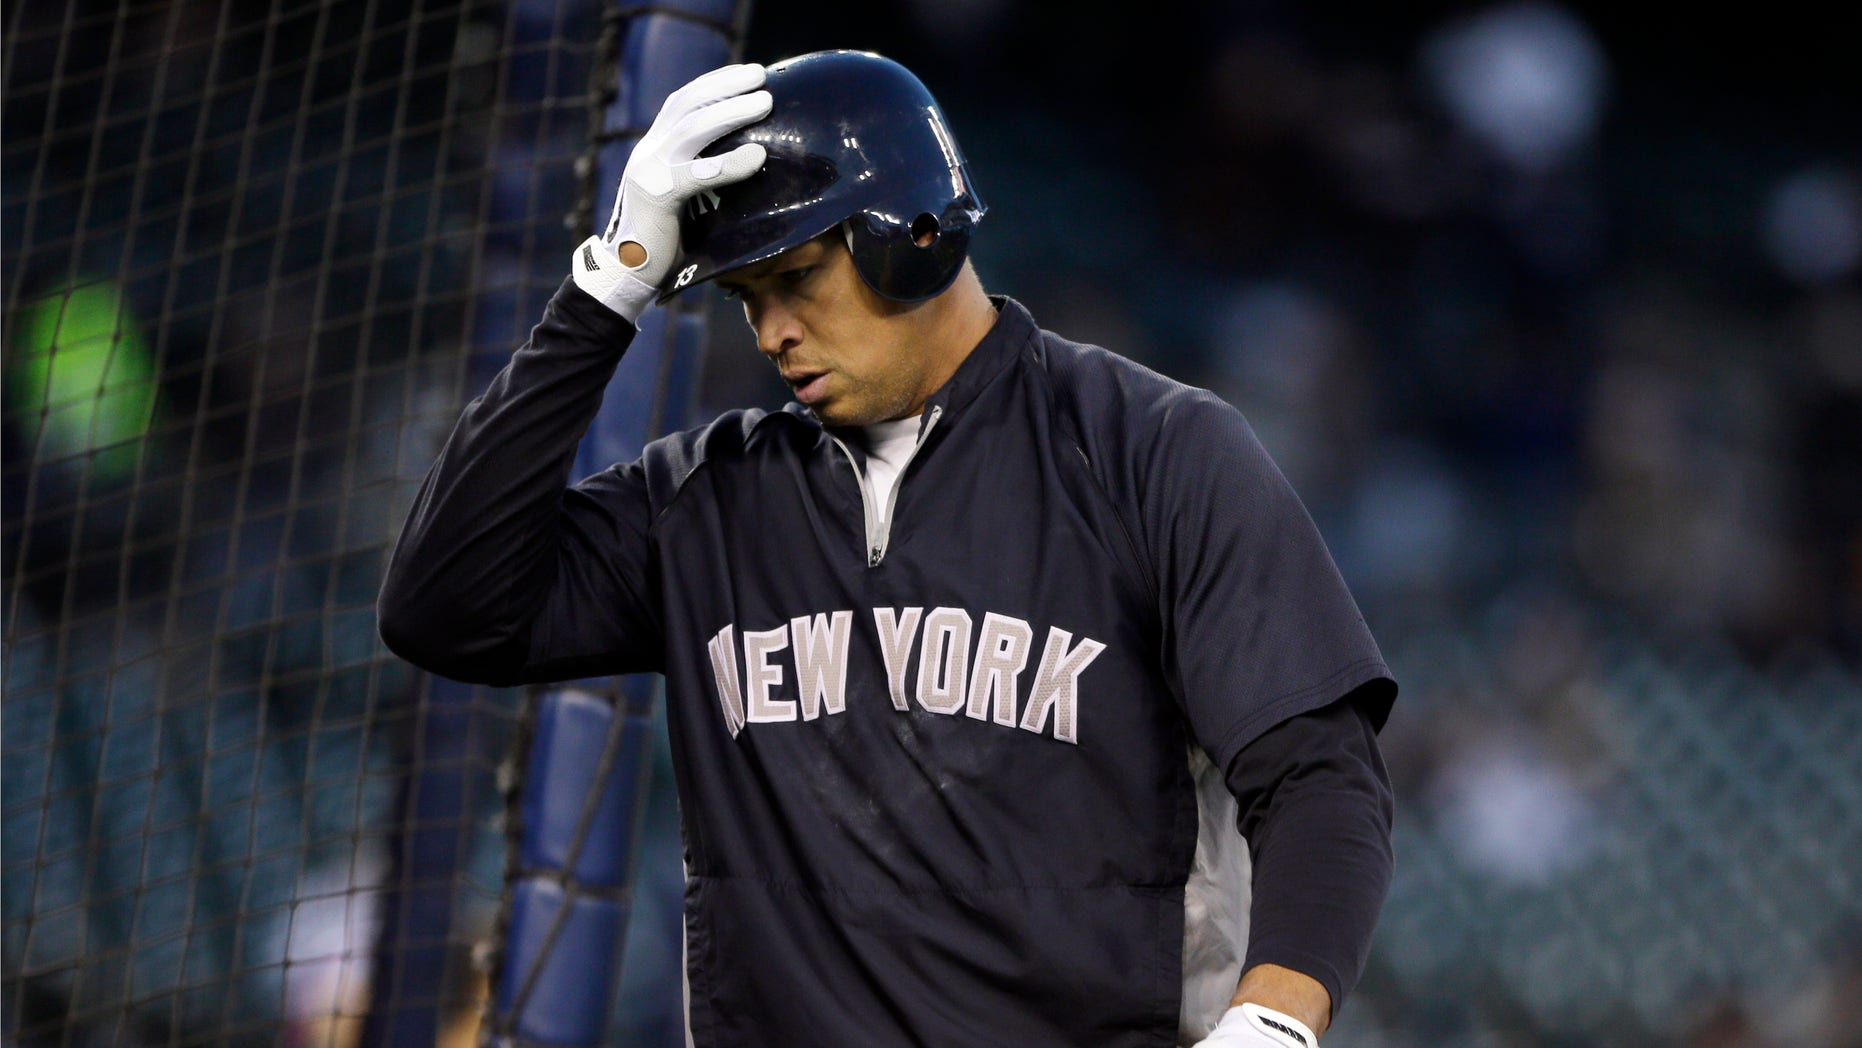 Oct. 16, 2012: New York Yankees' Alex Rodriguez walks out of the batting cage following batting practice before the start of Game 3 of the American League championship series against the Detroit Tigers in Detroit.